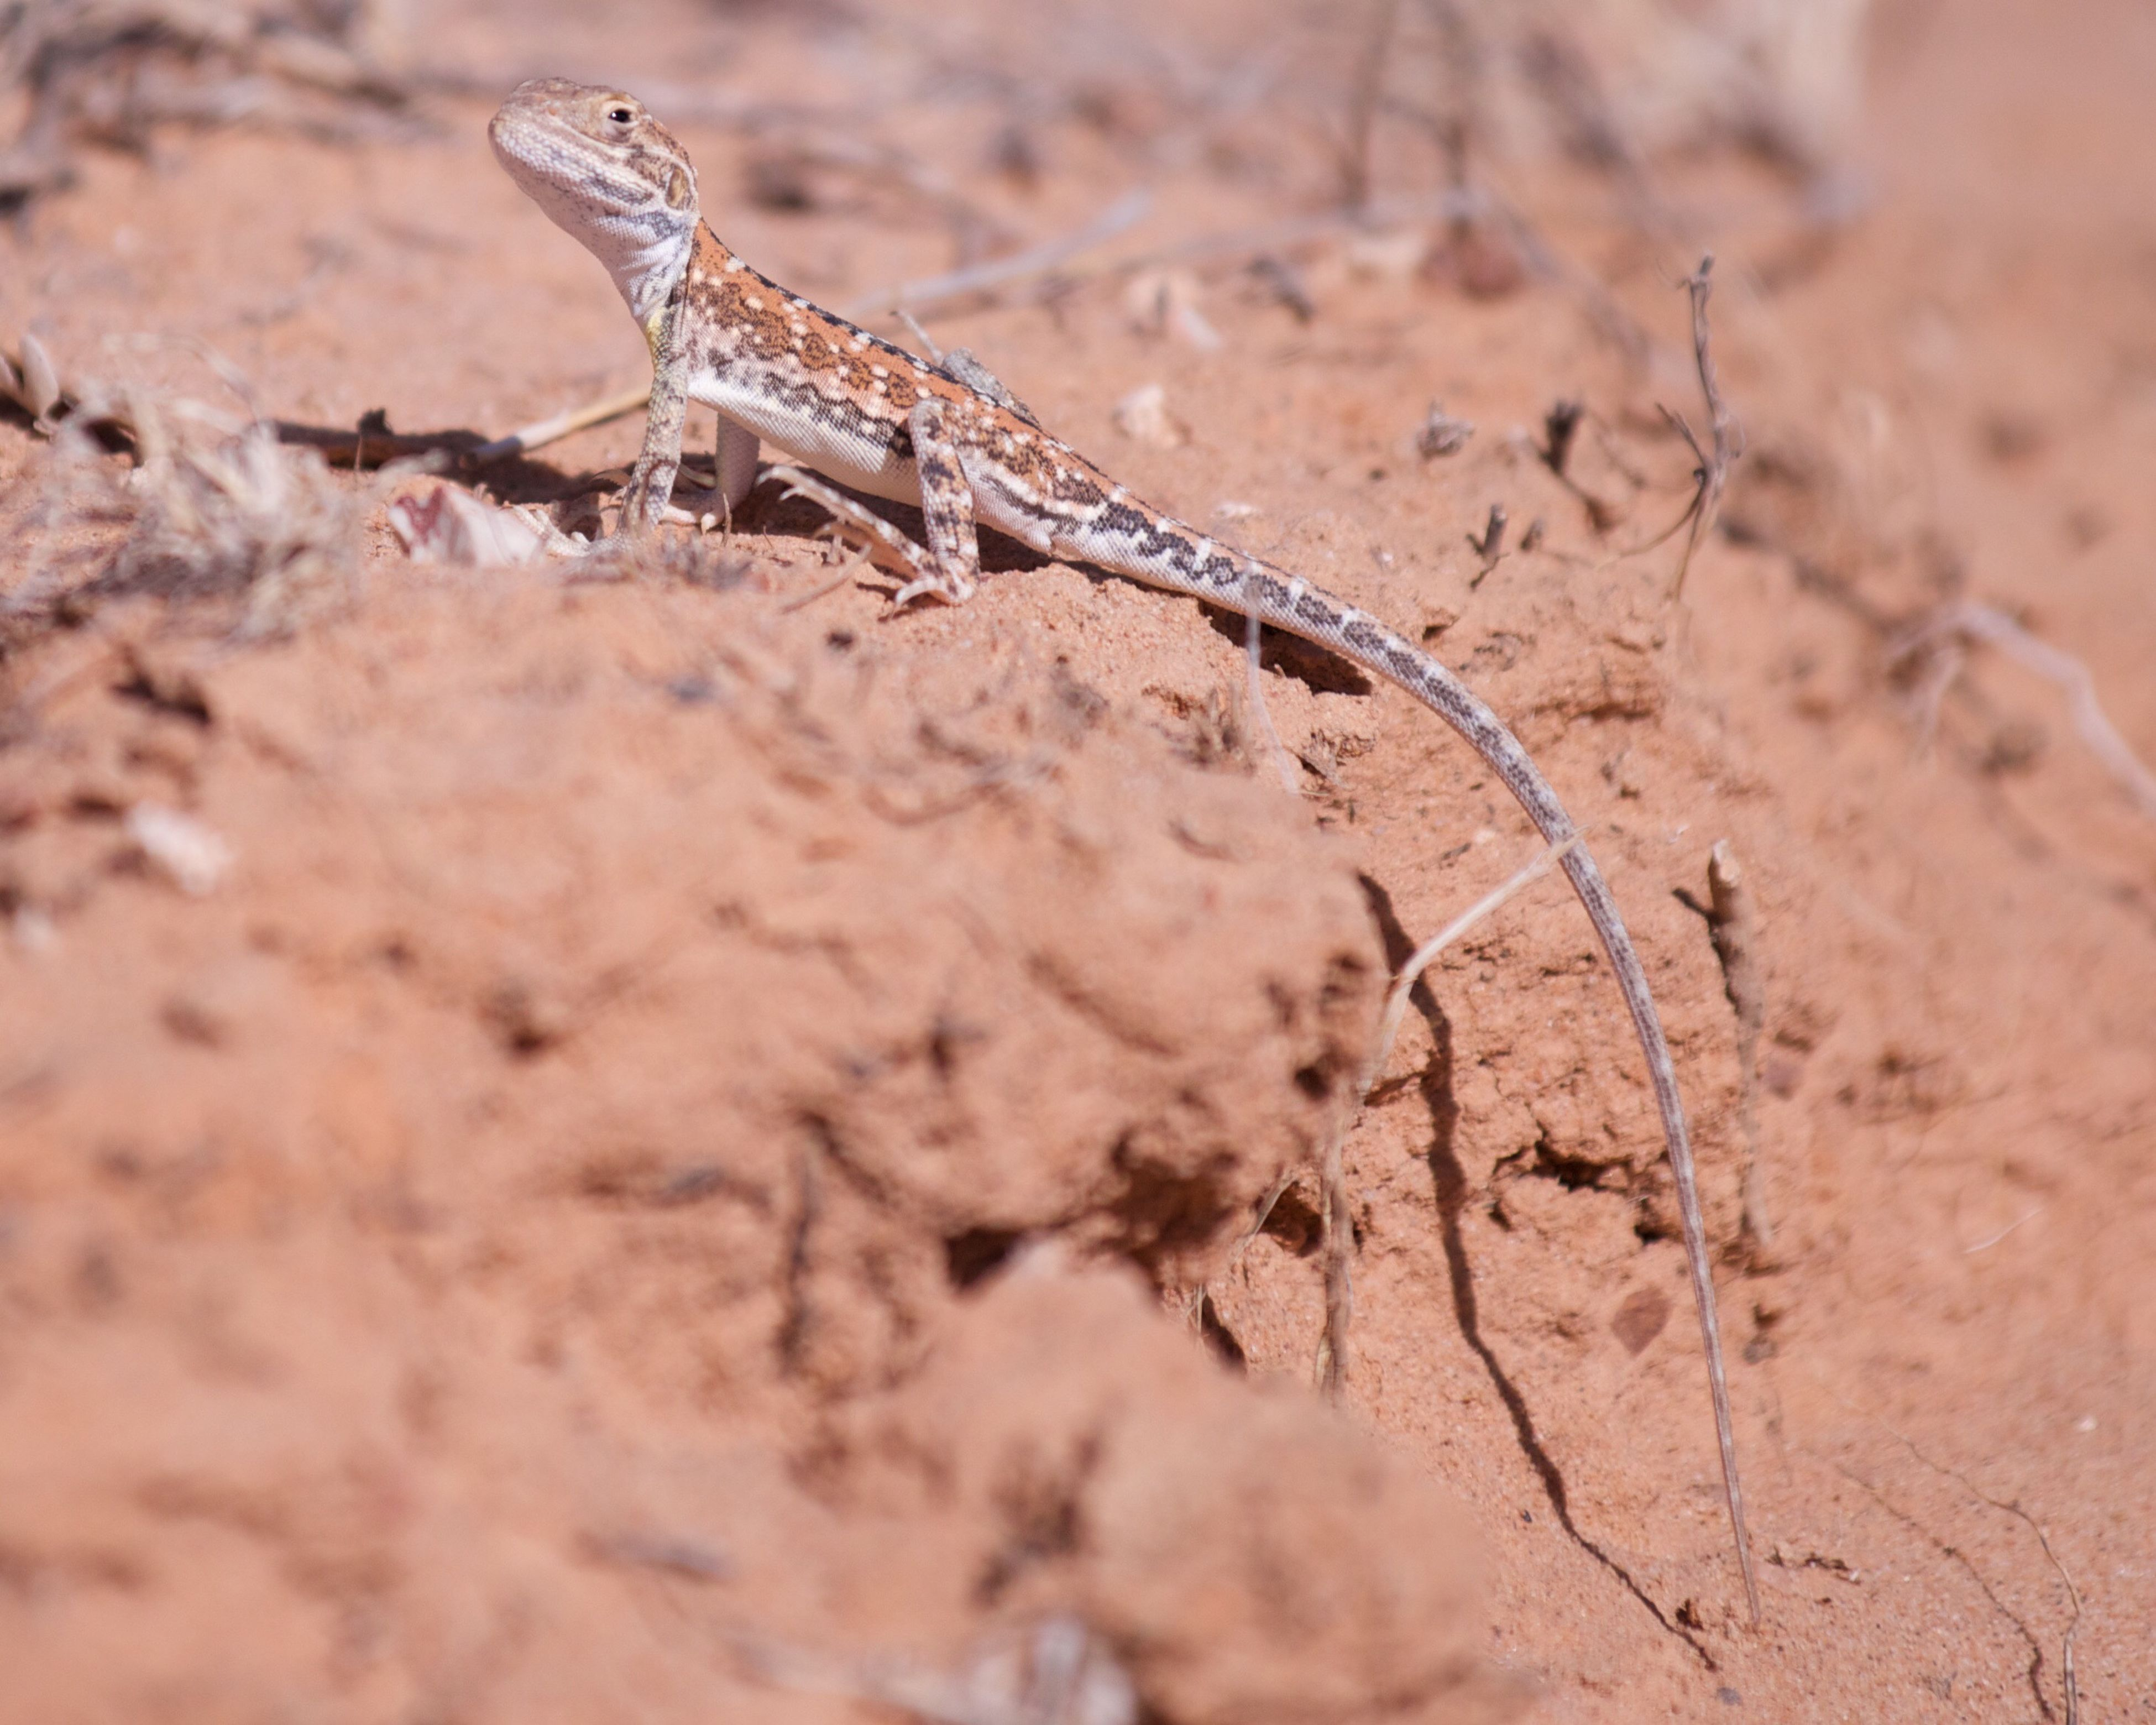 A Gibber Dragon (Ctenophorus gibba) photographed in a dry sandy creek bed along the Birdsville Track north of Marree in South Australia - Nikon D800 Ctenophorusgibba Reptile Lizard Wildlife Australian Wildlife Animals Desert Wildlife Photography Wildlife & Nature Nature Photography Animal Wildlife Animals In The Wild Sand Outdoors